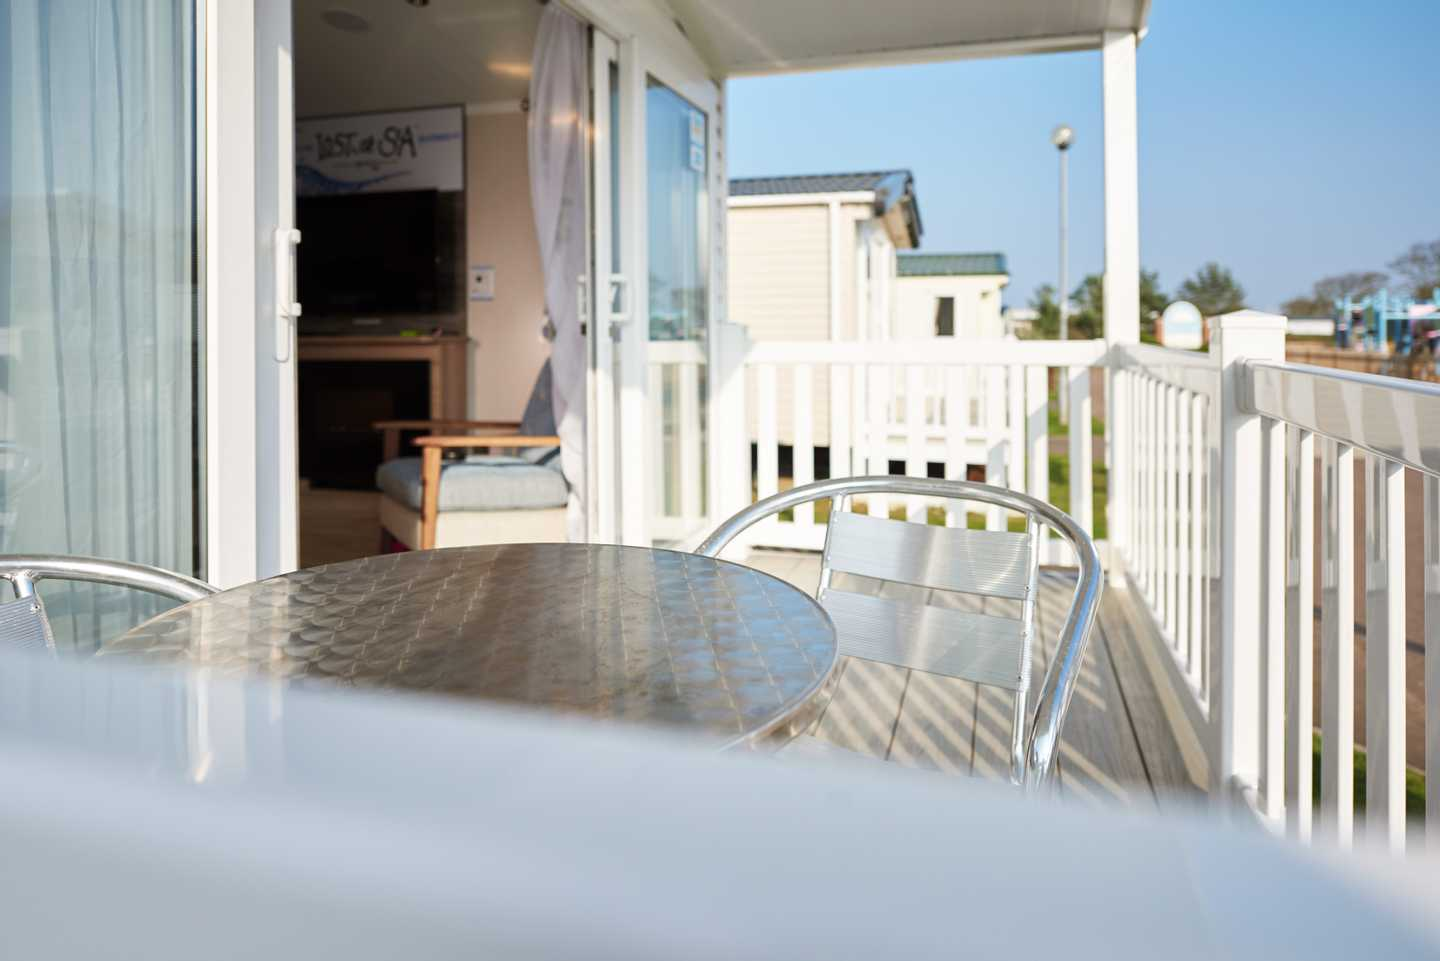 Decking area with a table and chairs